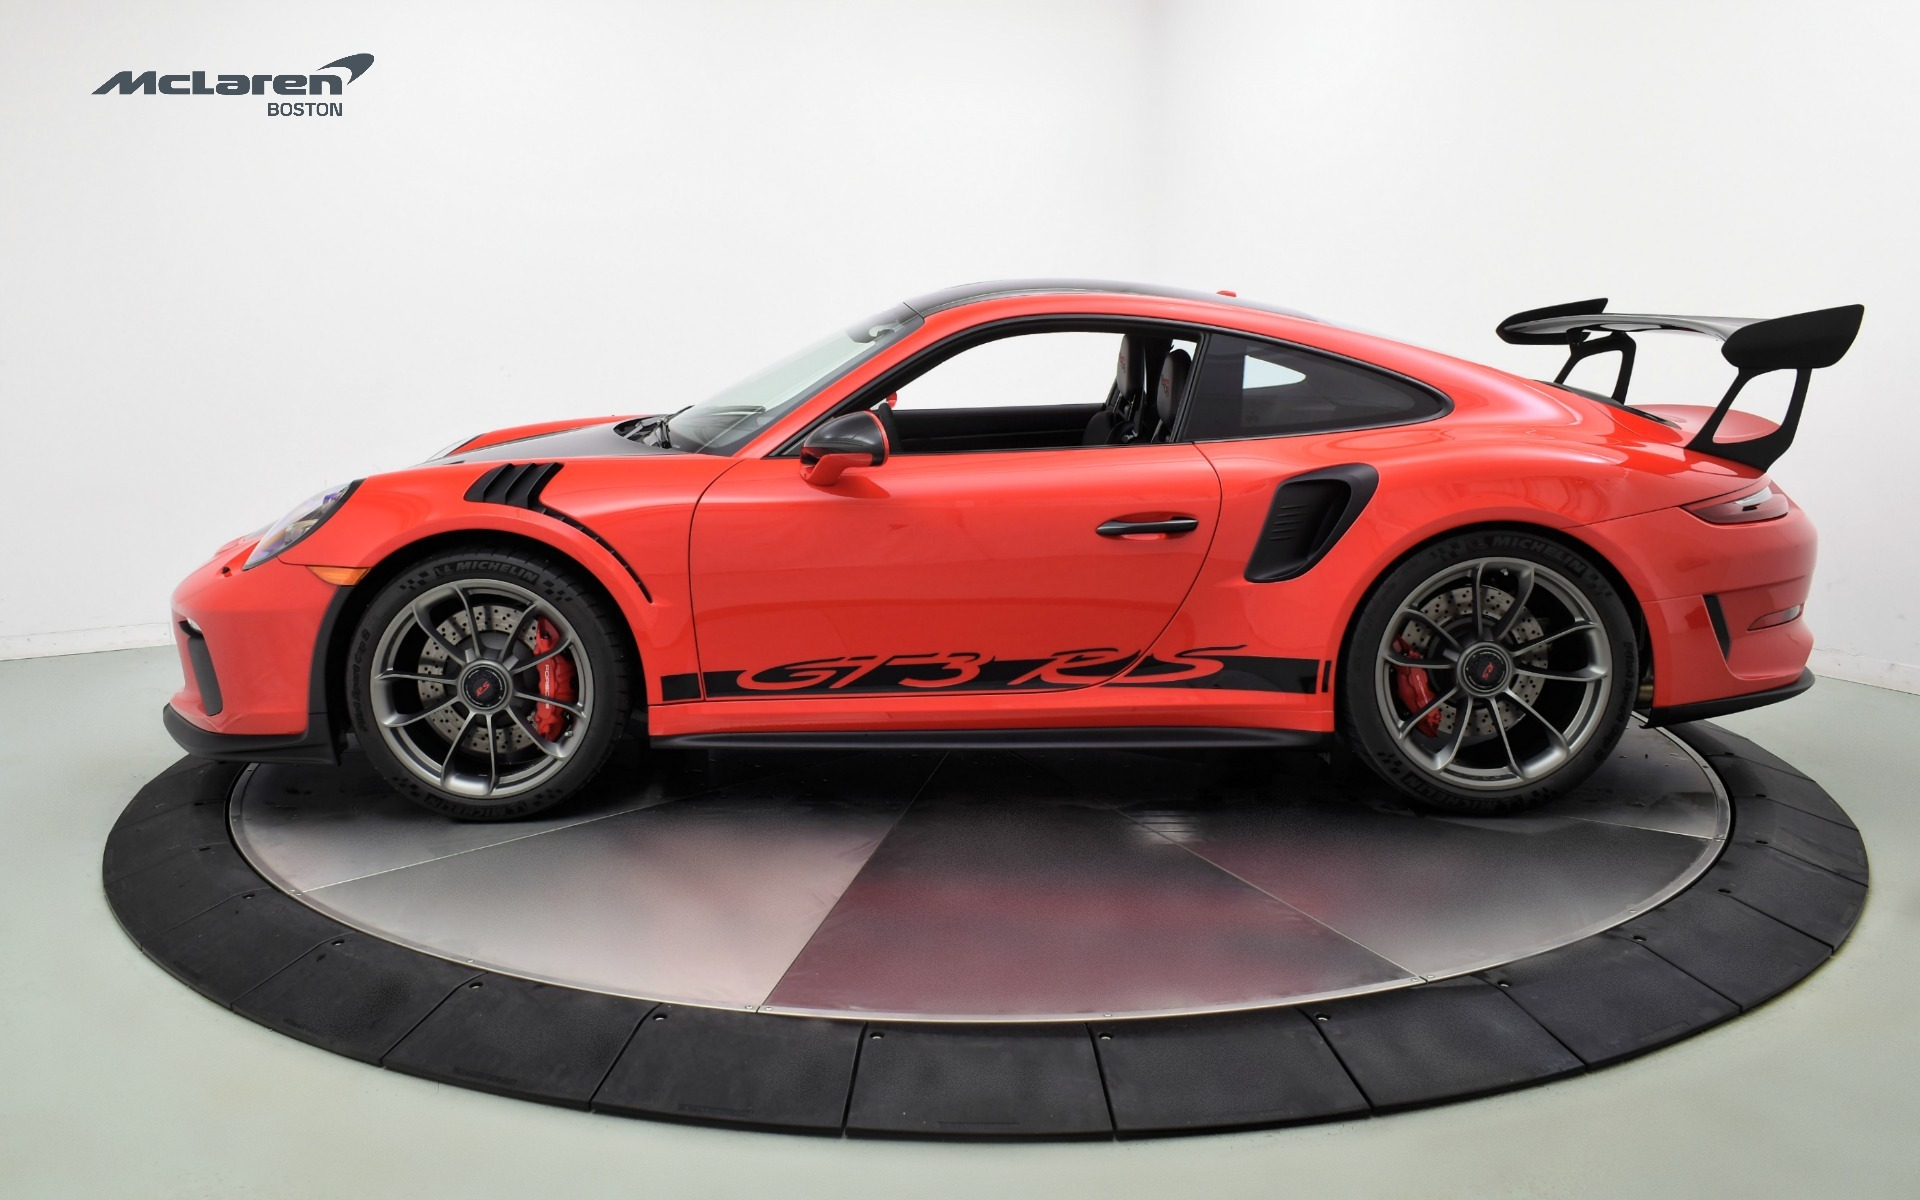 2019 PORSCHE 911 GT3 RS GT3 RS For Sale in Norwell MA